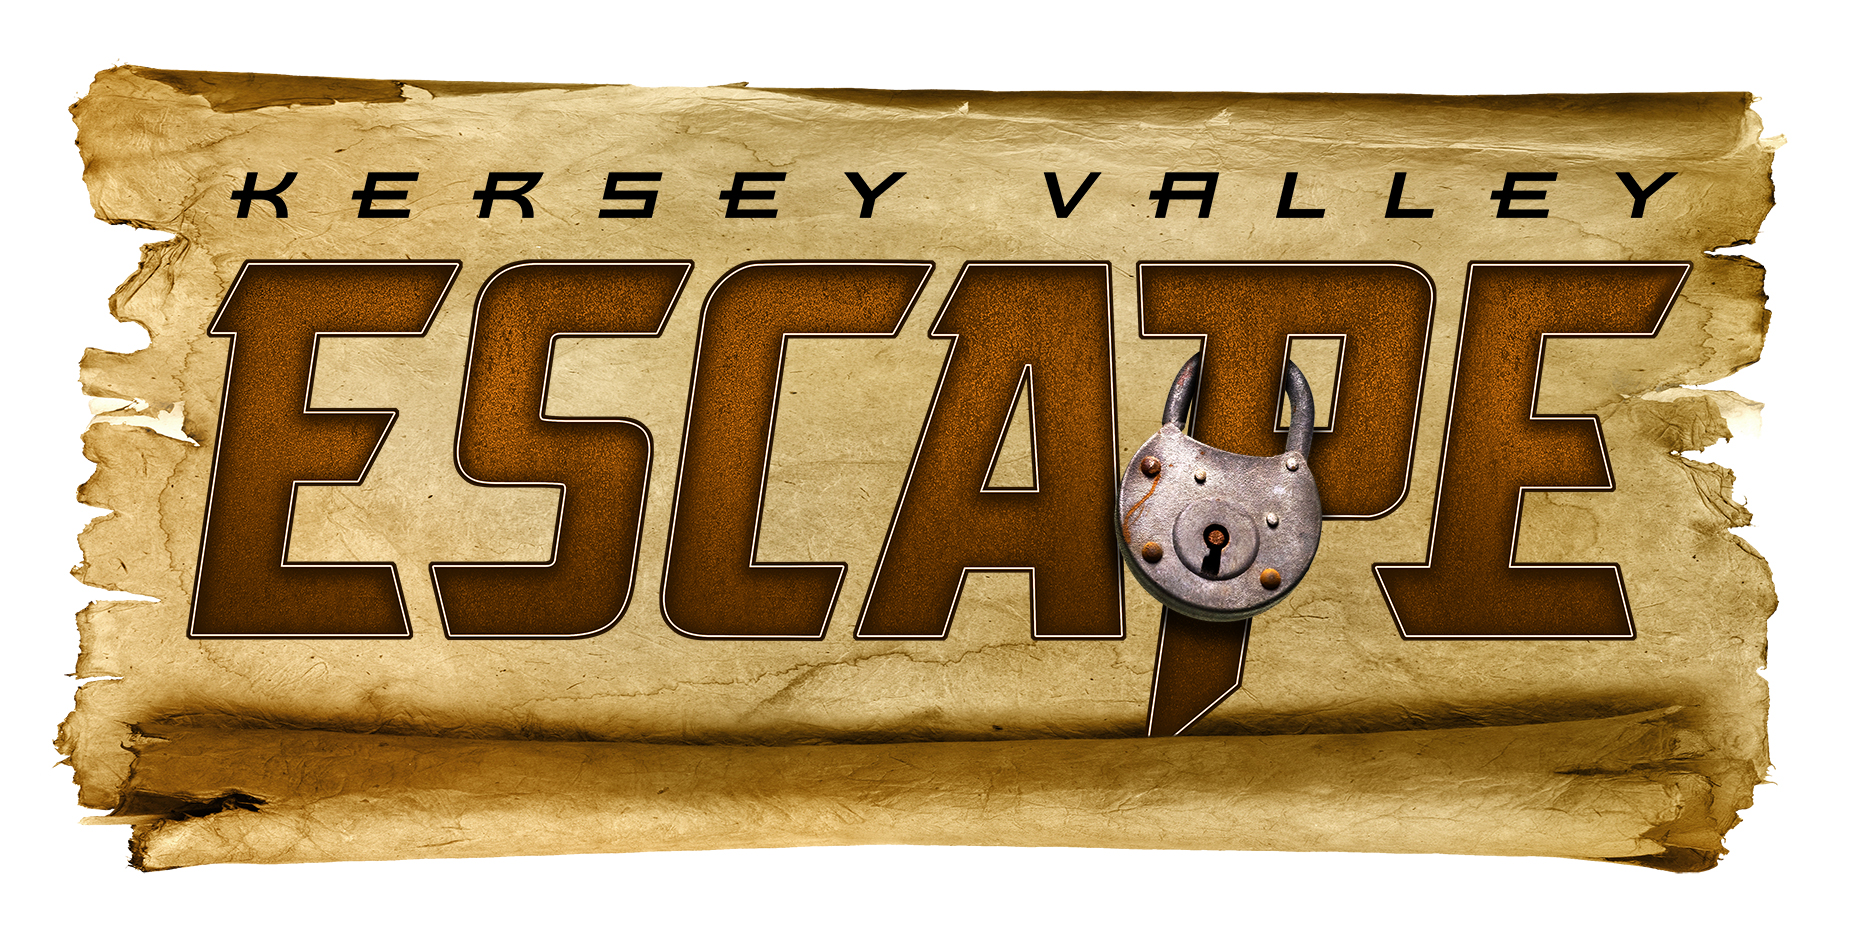 Kersey Valley Escape Room